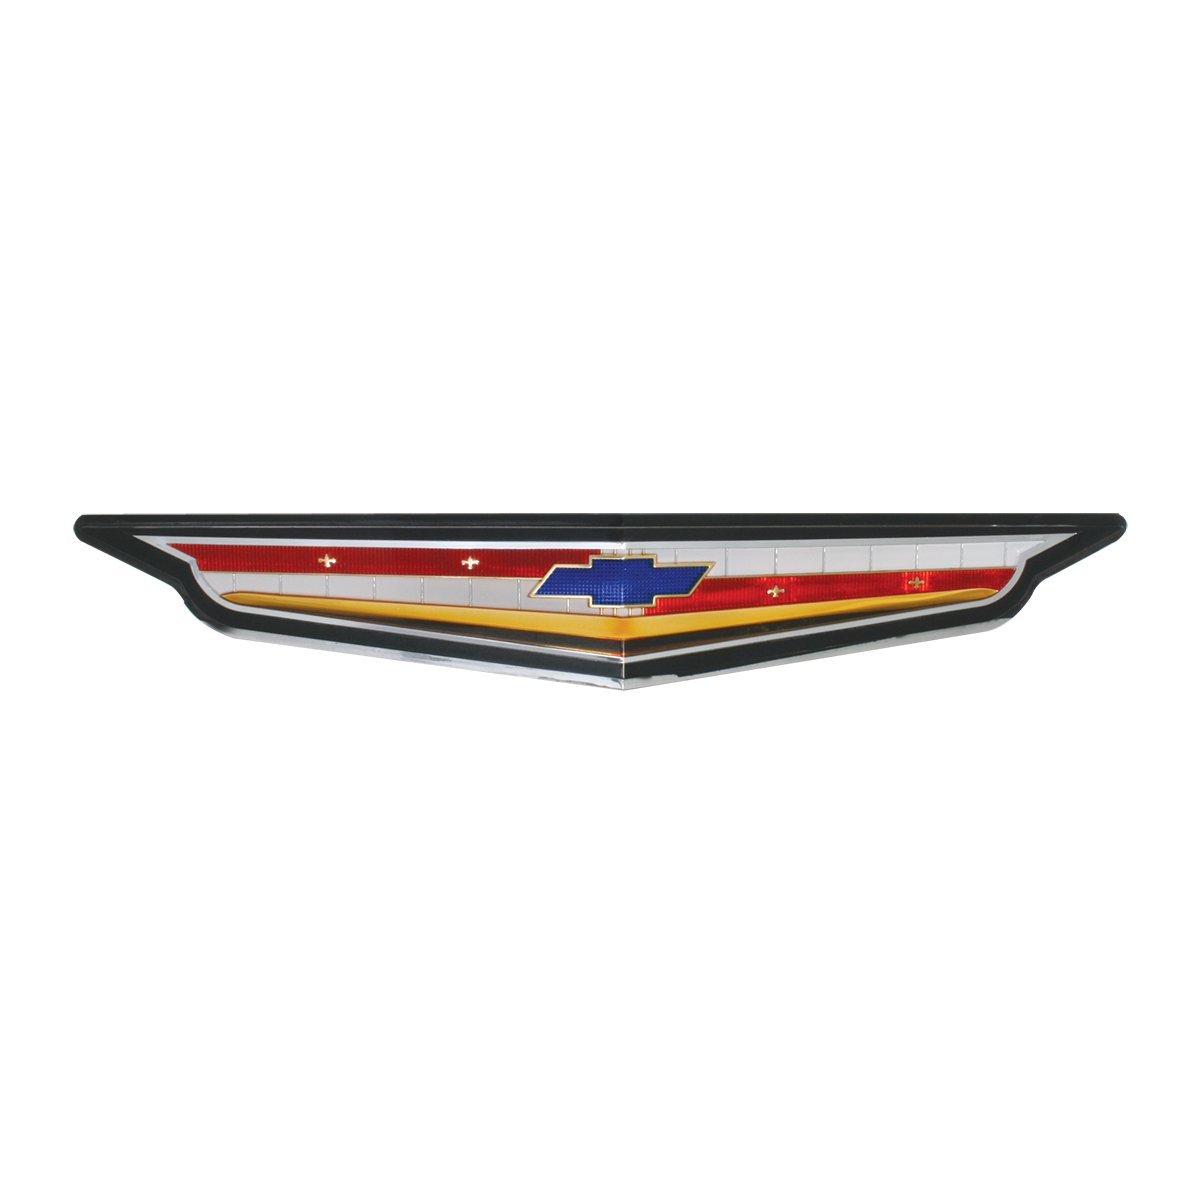 Biscayne KNS Accessories KC4527 1961 Chevrolet 283 Front Hood Emblem for Impala Bel Air